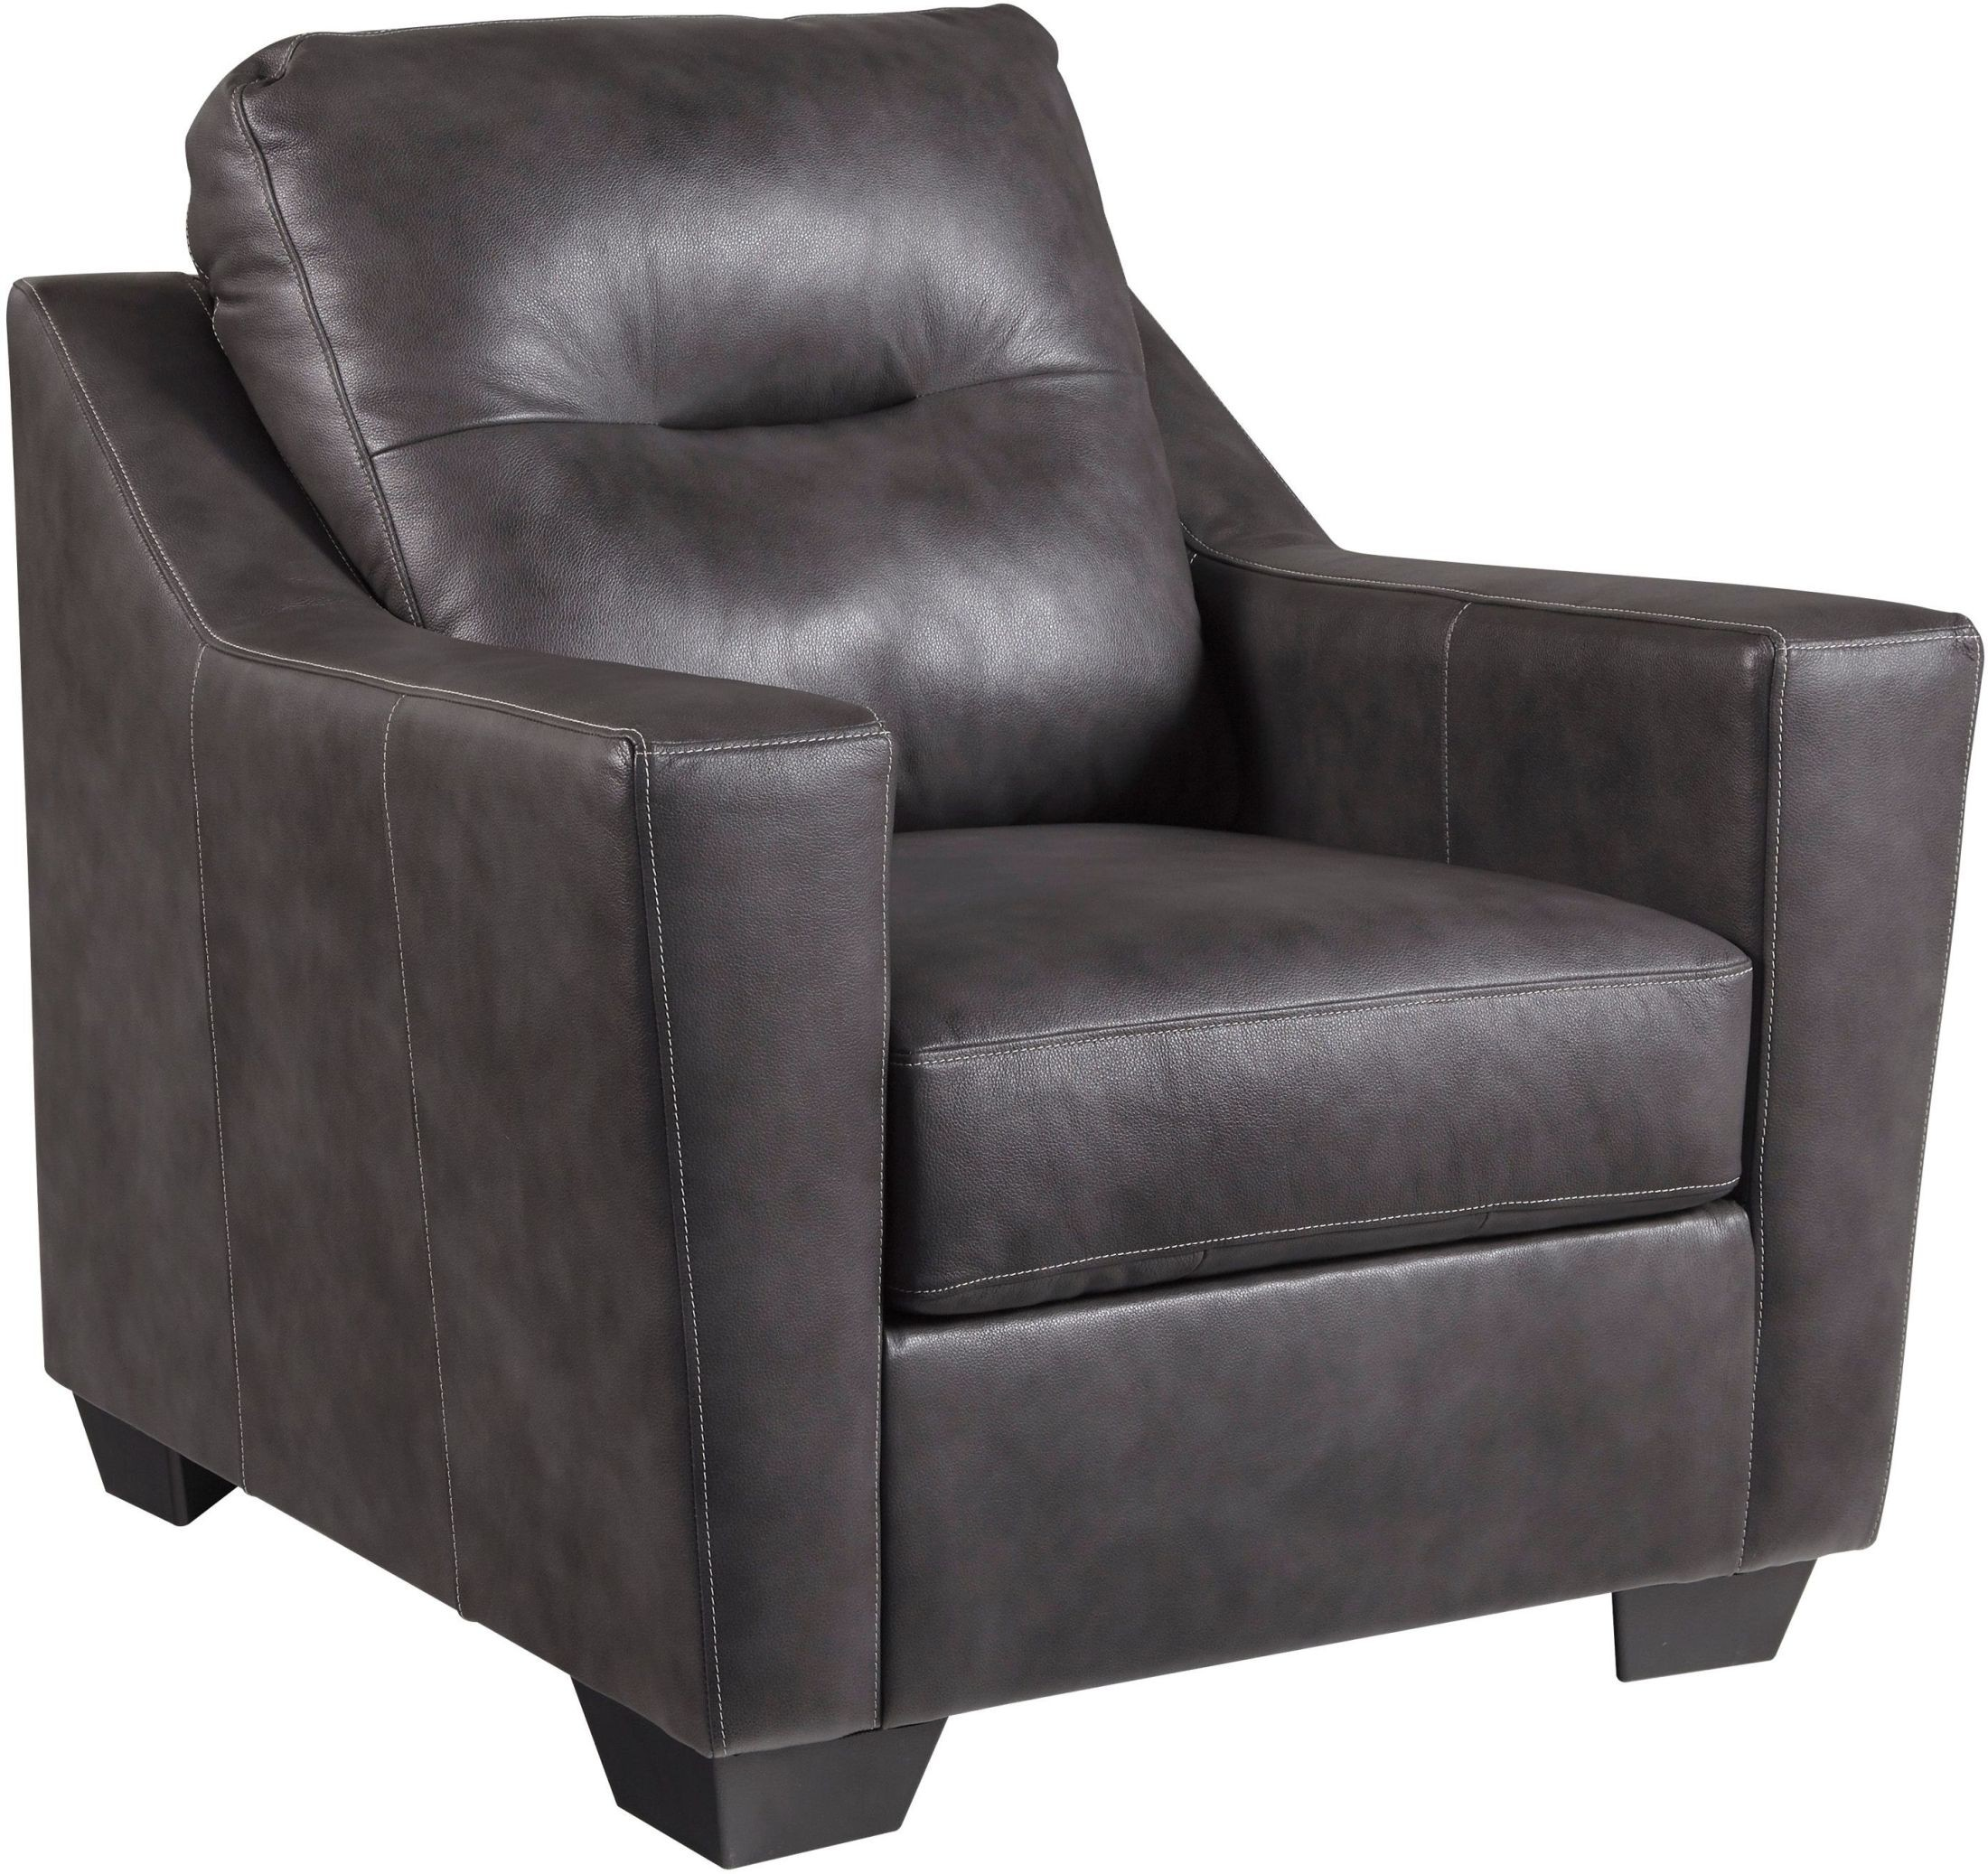 Kensbridge Charcoal Chair from Ashley  Coleman Furniture